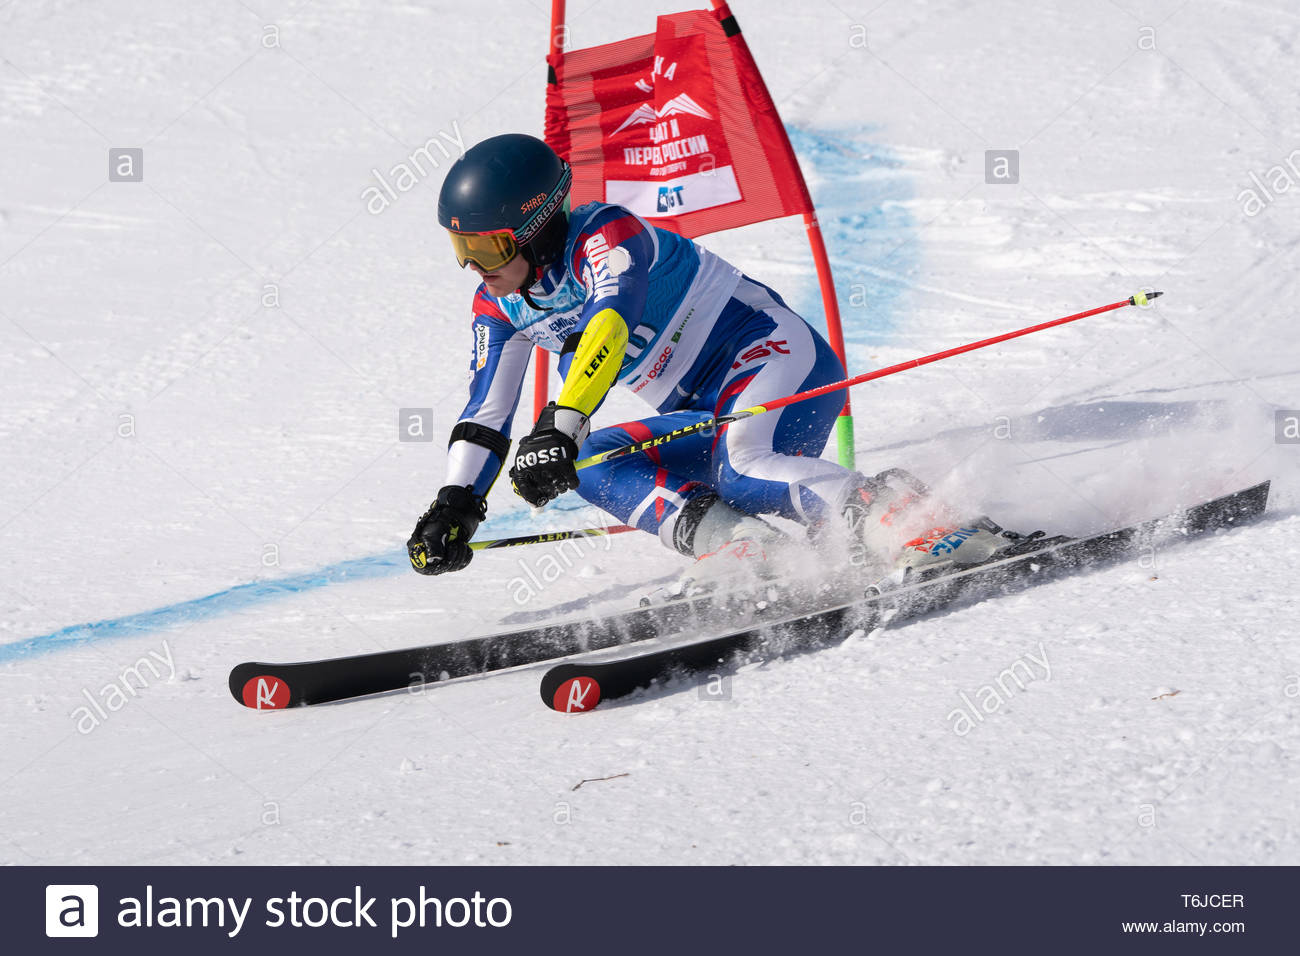 KAMCHATKA PENINSULA, RUSSIA - APR 1, 2019: Russian Alpine Skiing Cup, International Ski Federation (FIS) Championship - giant slalom. Mountain skier N - Stock Image